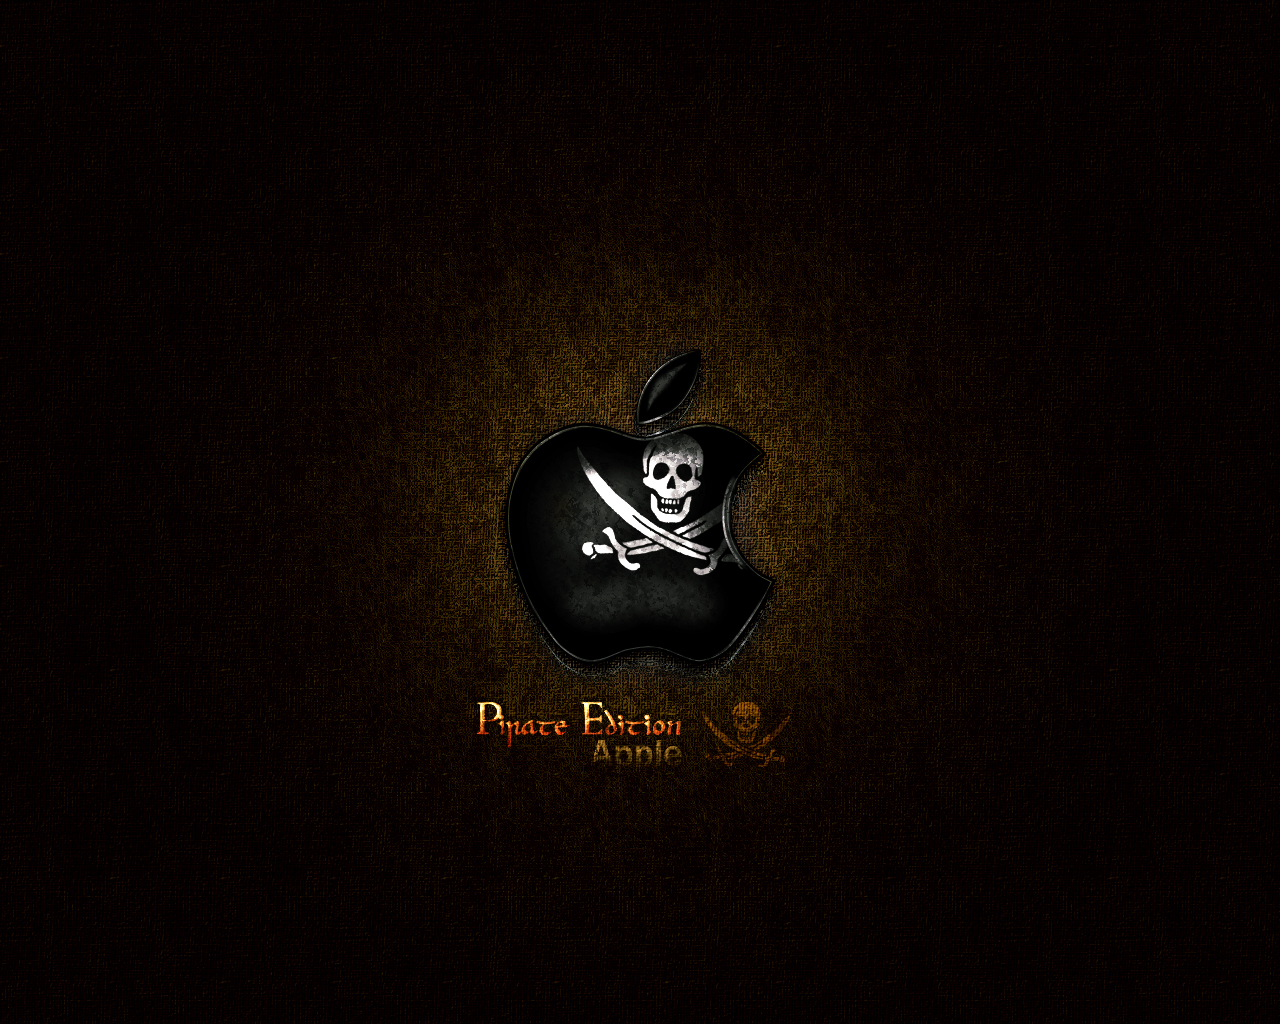 Apple Pirate Wallpaper By Easydisplayname On Deviantart